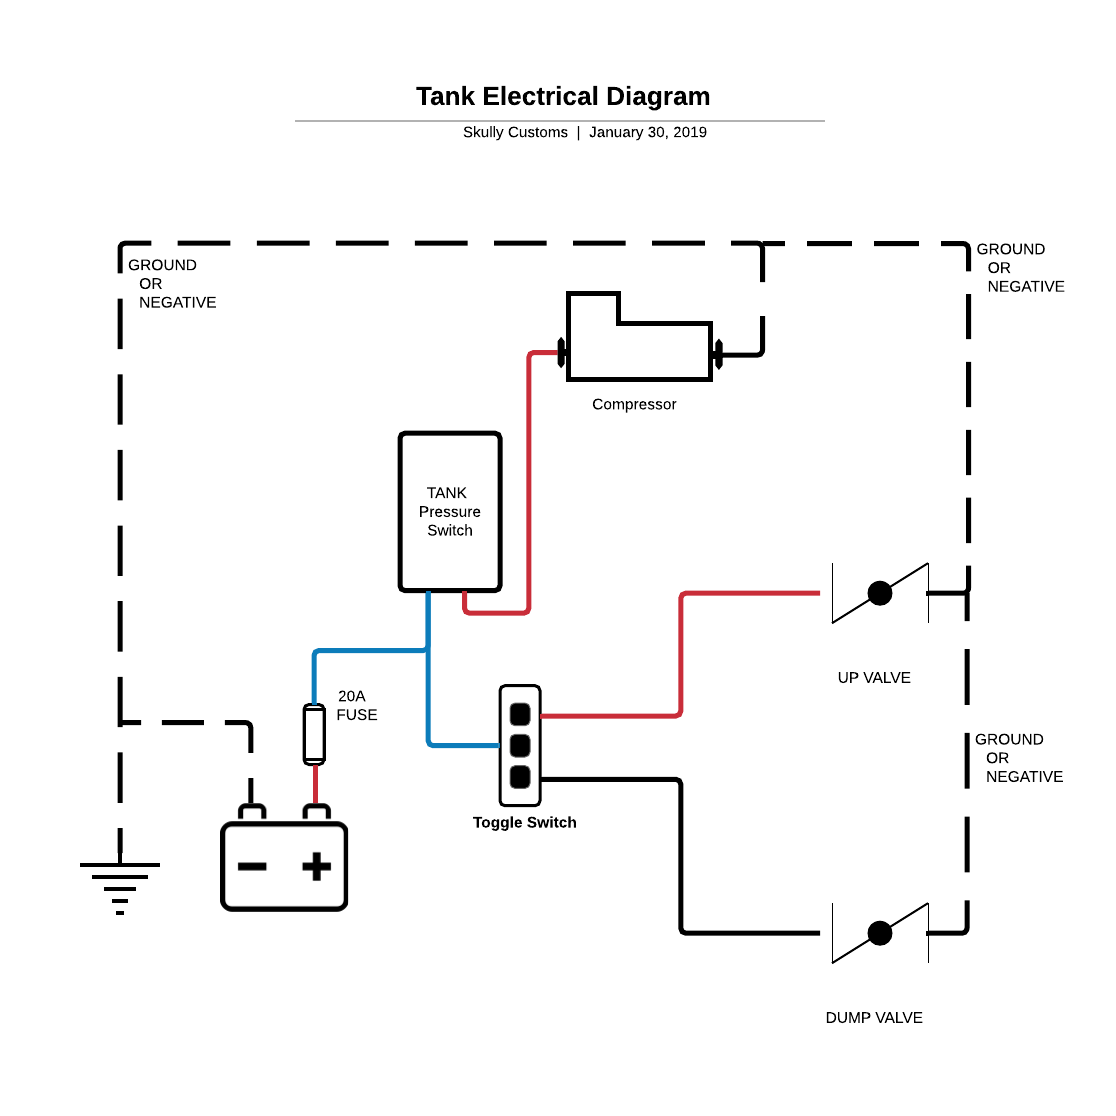 small resolution of fast up tank with toggle switch